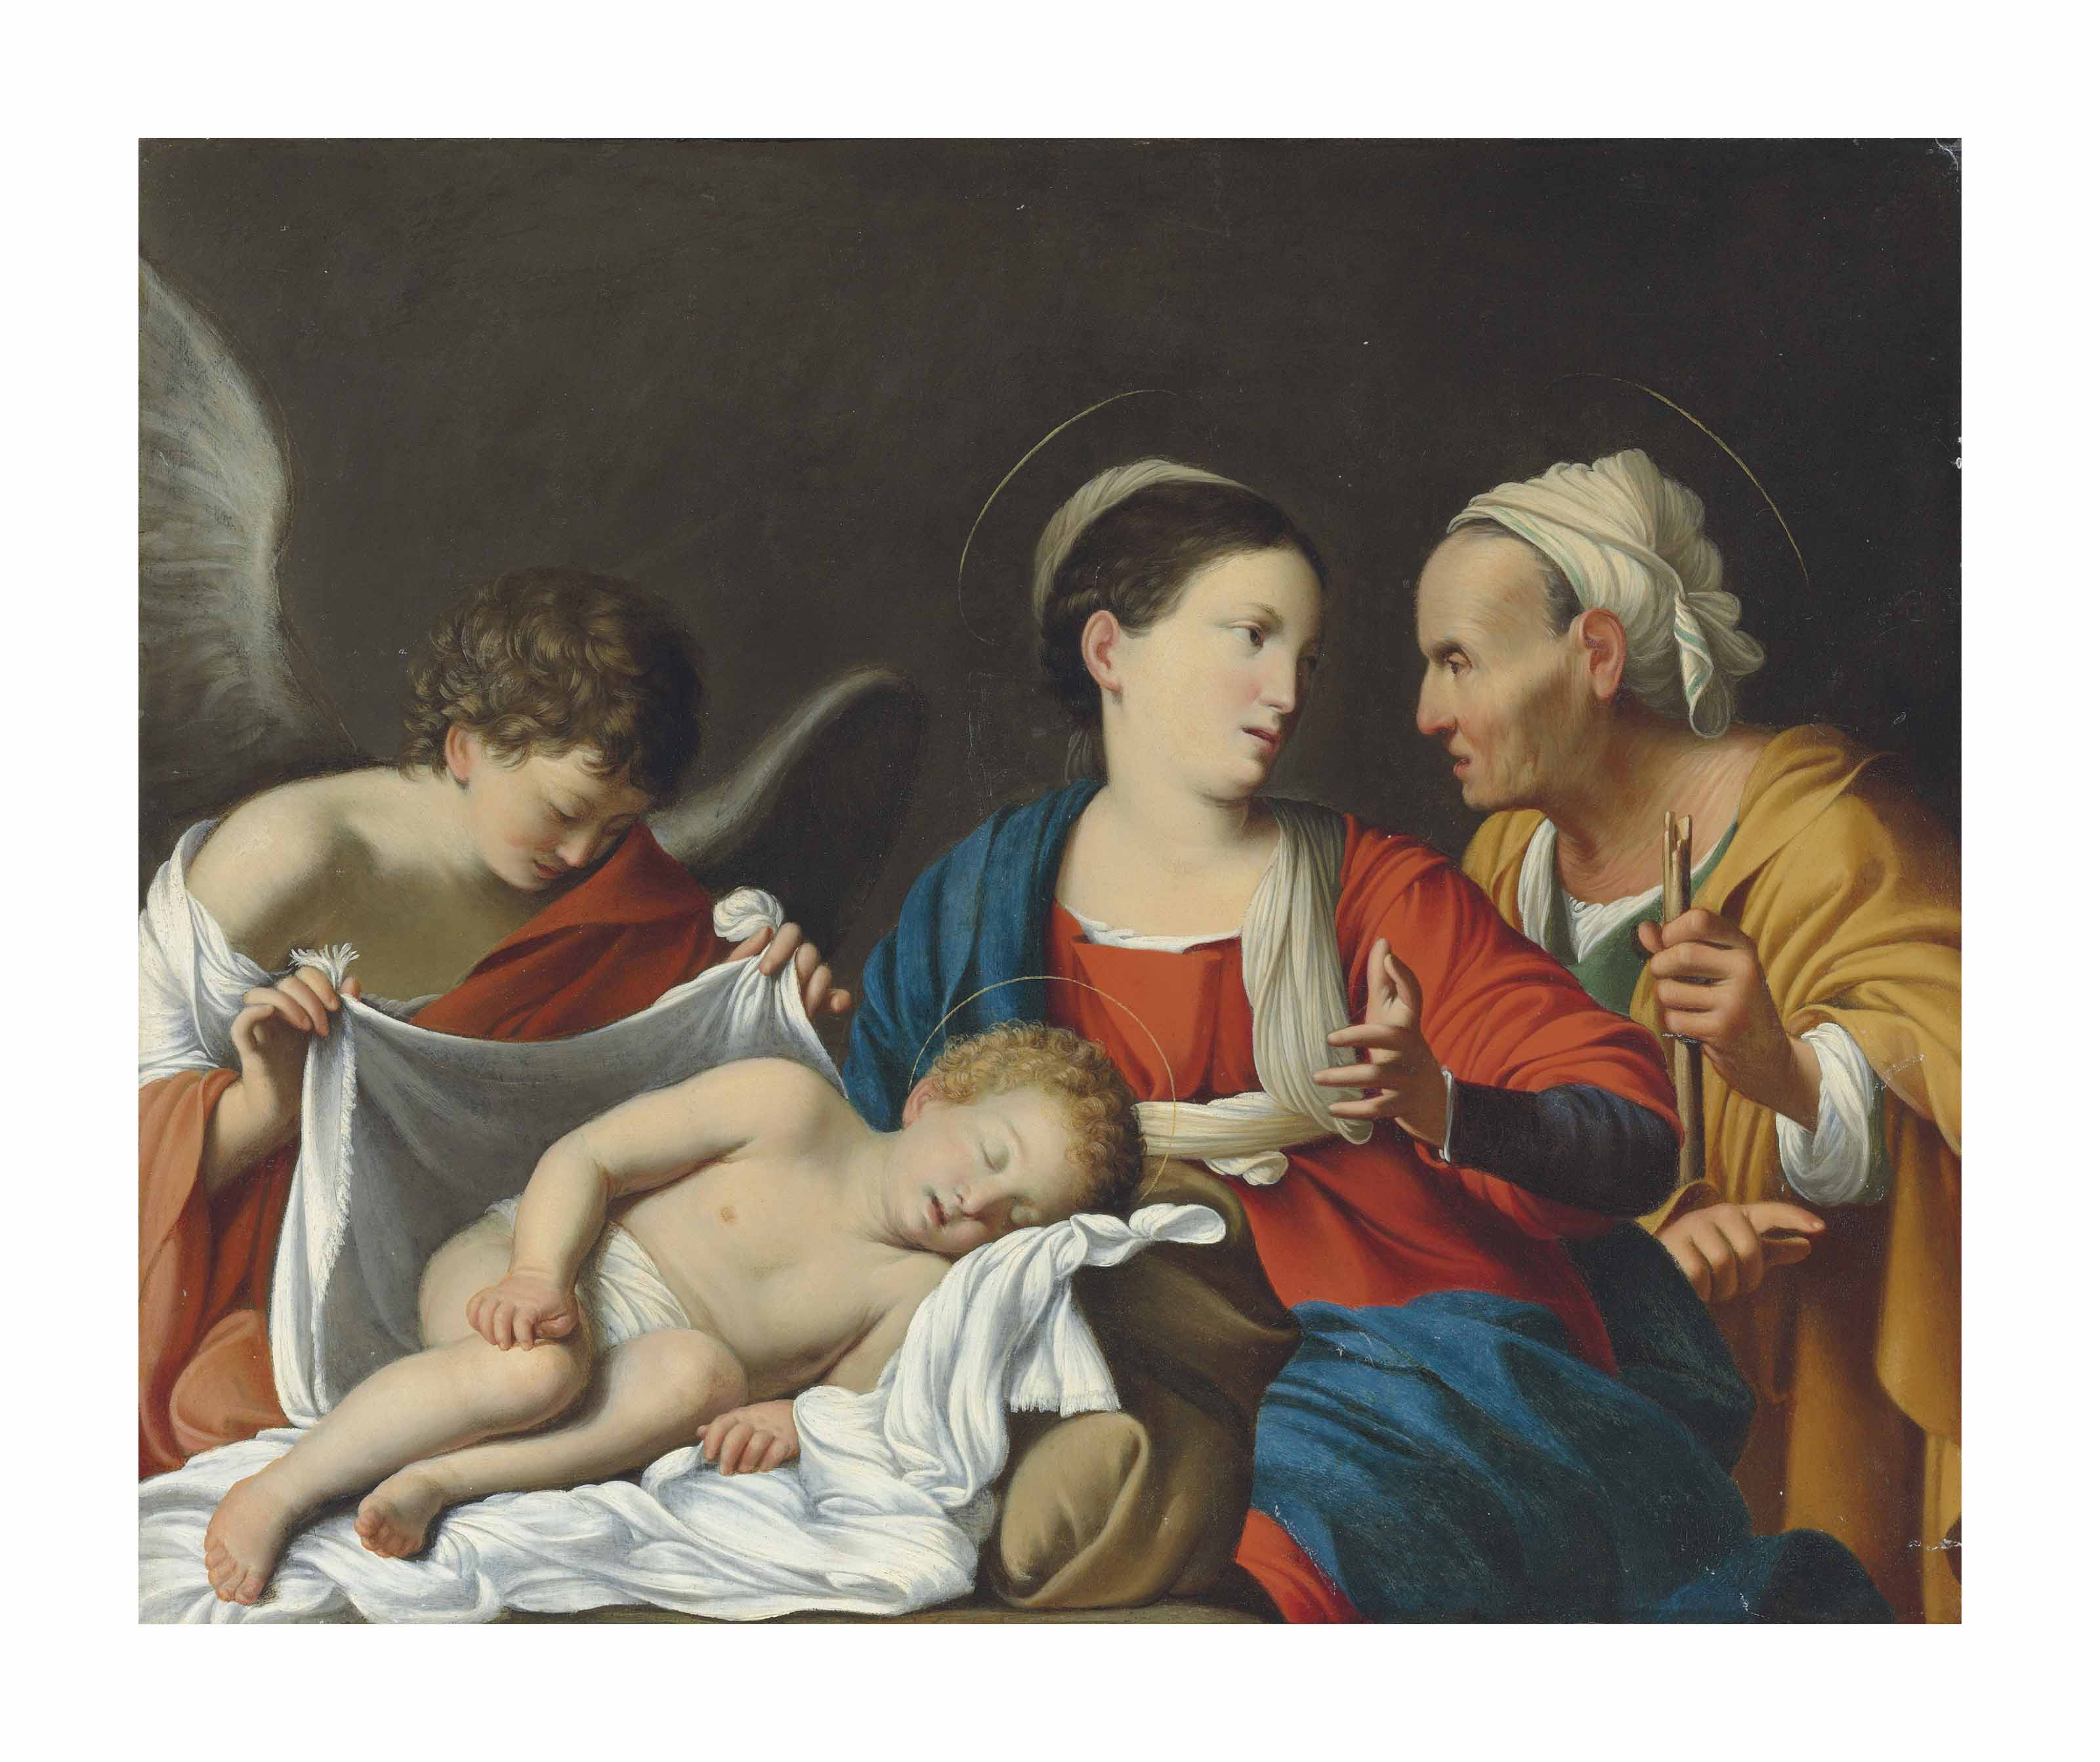 The Madonna and Child with Saint Anne and an angel